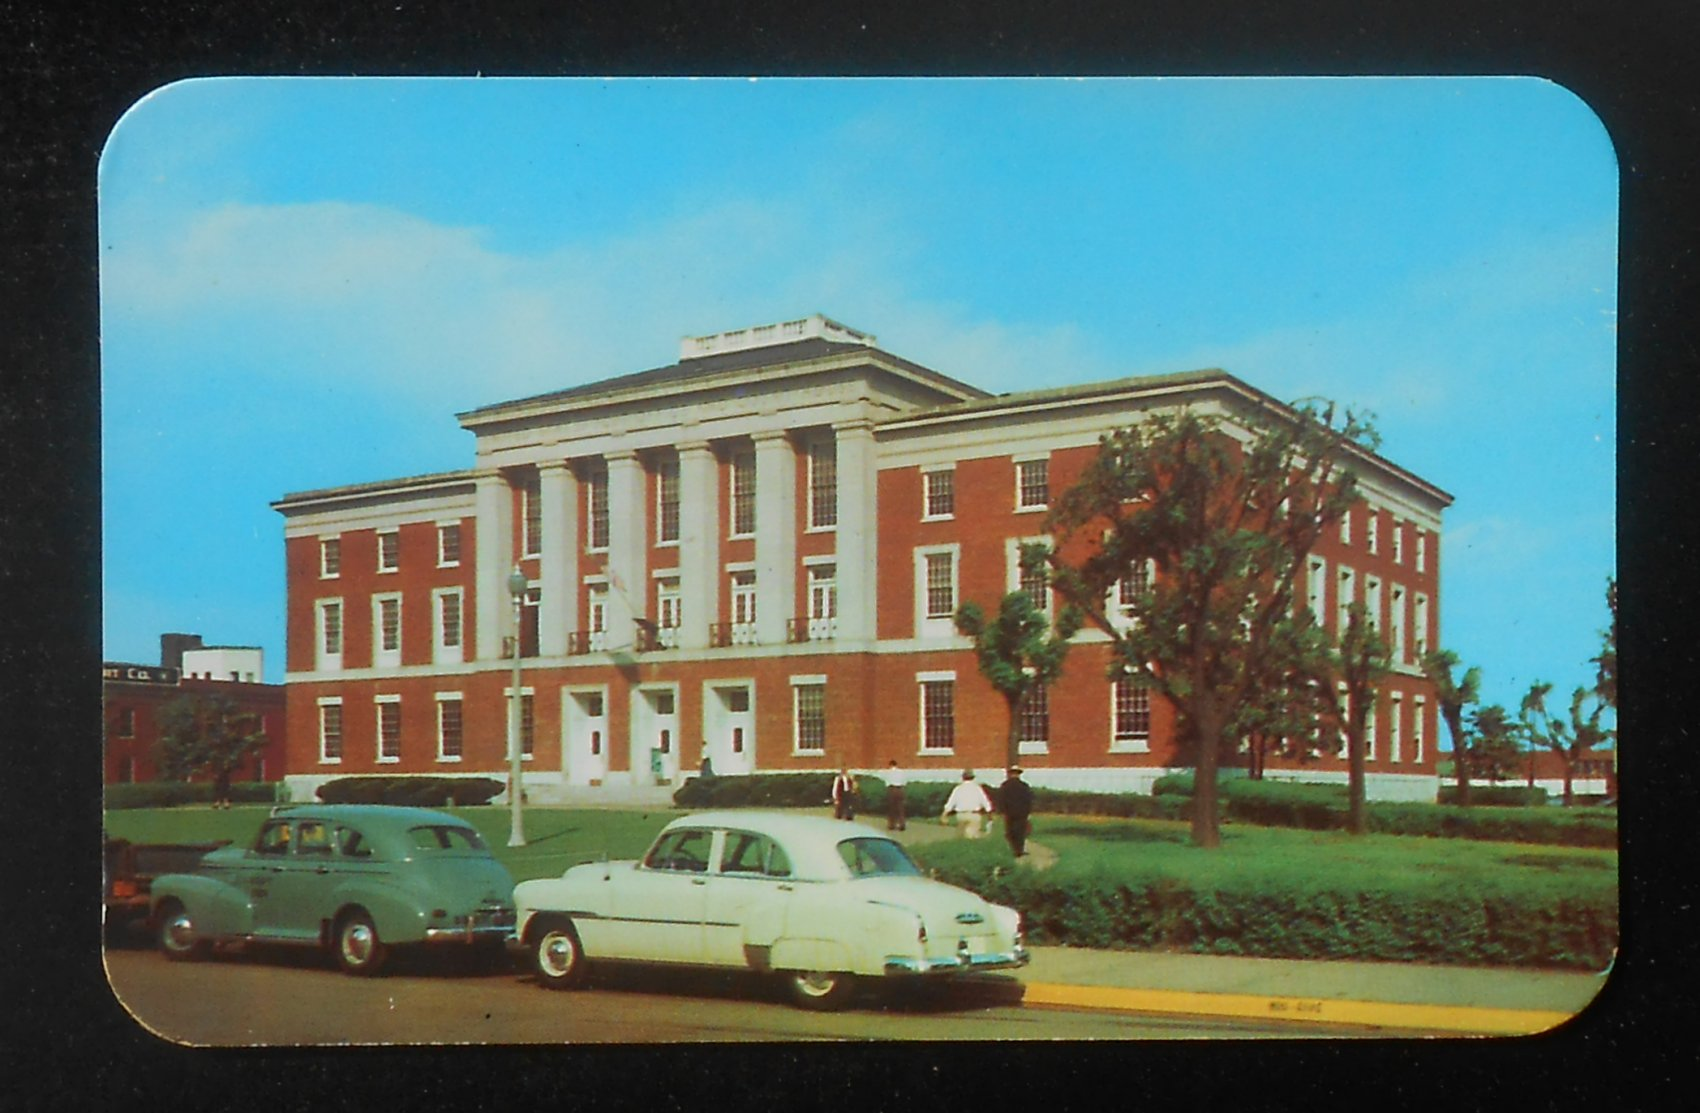 1950s federal building and post office old cars fort smith ar sebastian co pc ebay. Black Bedroom Furniture Sets. Home Design Ideas